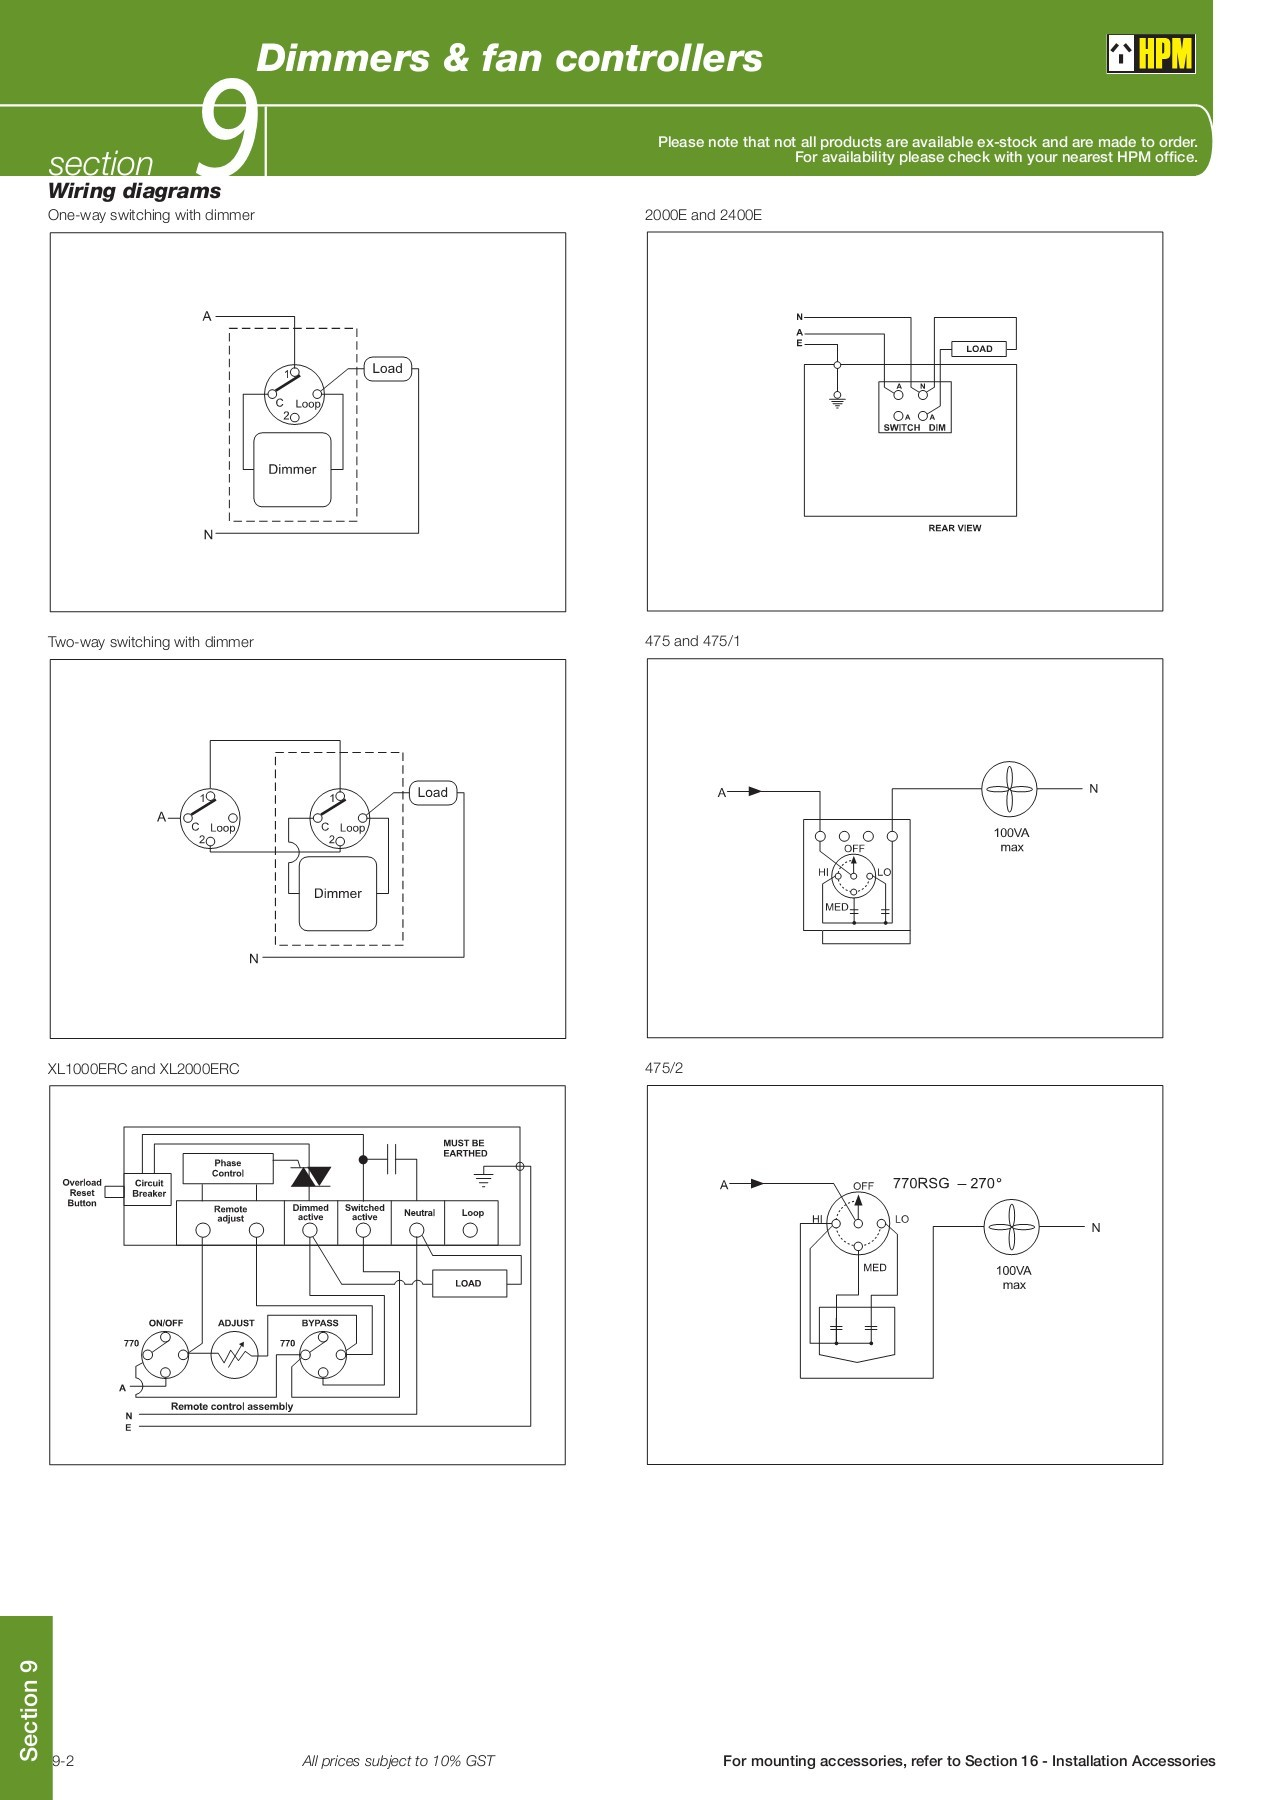 hight resolution of dimmers fan controllers 9 hpm